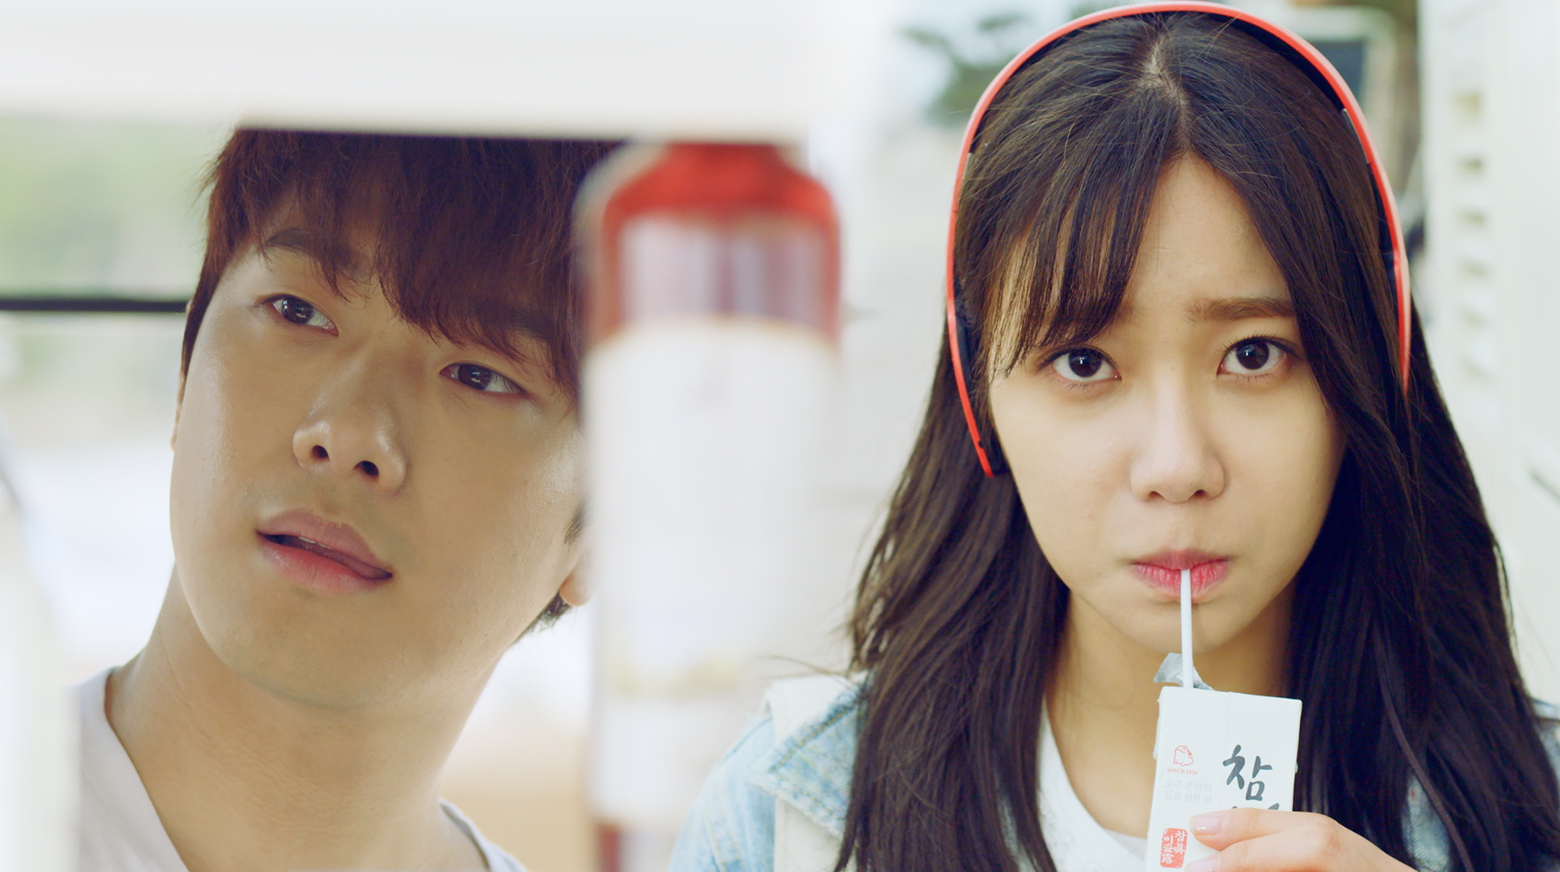 Hot and Sweet Episode 1 - 매콤달콤 - Watch Full Episodes Free